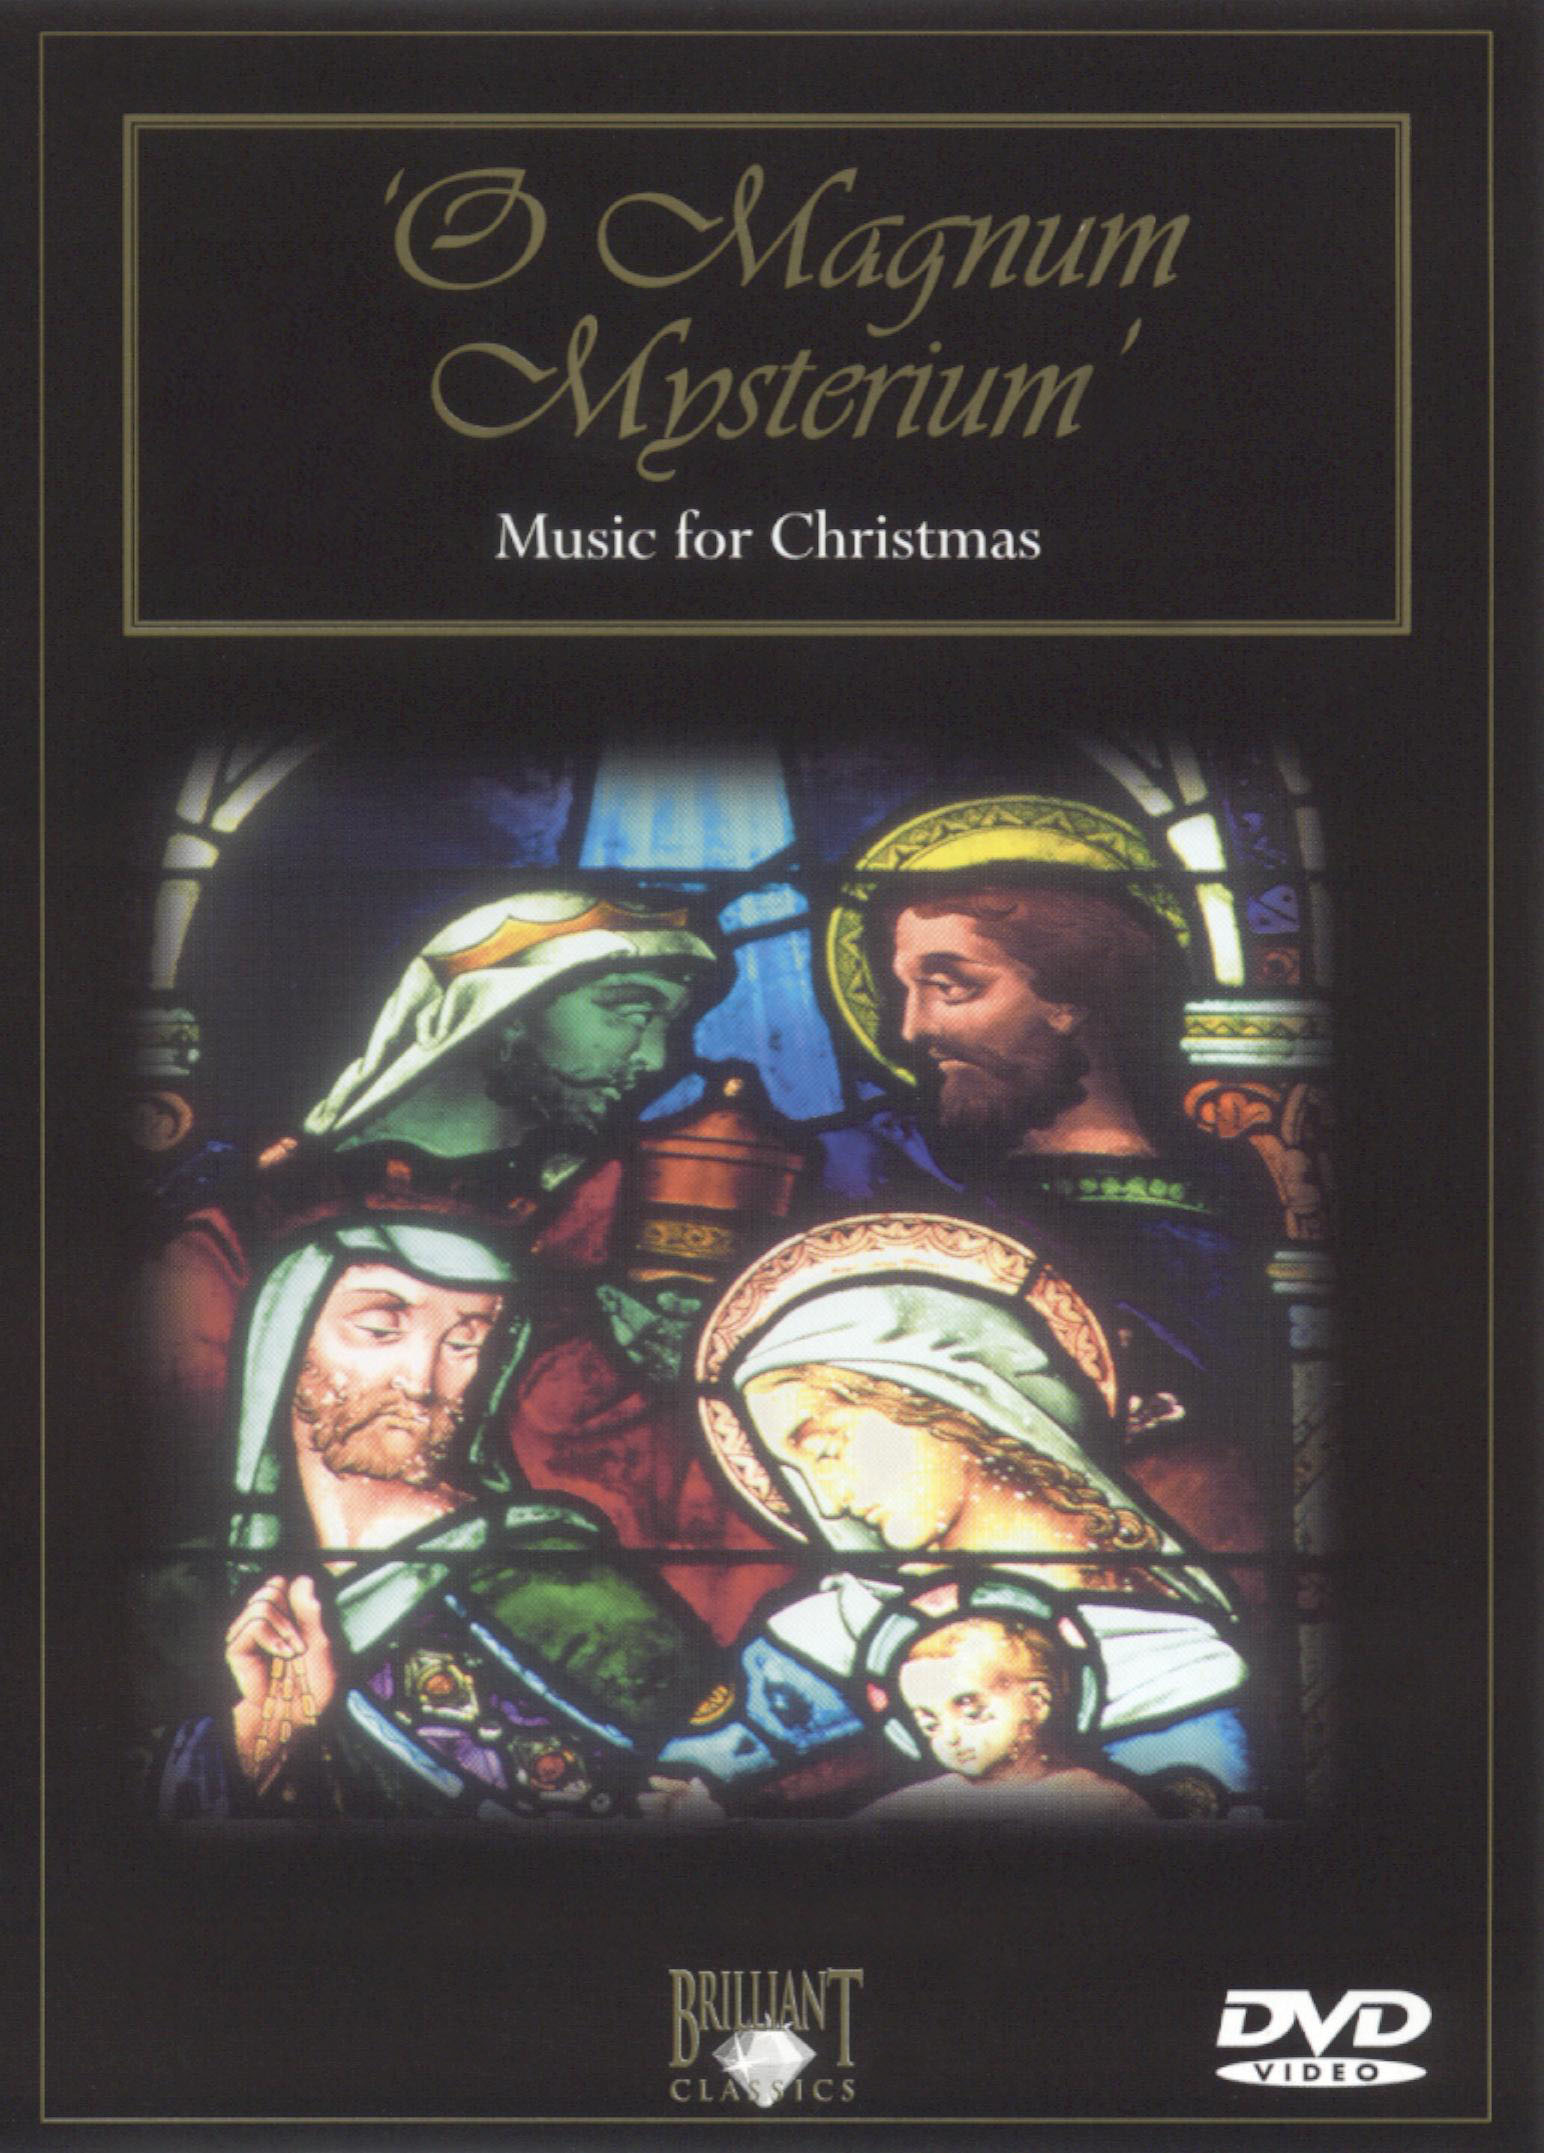 O Magnum Mysterium Music for Christmas